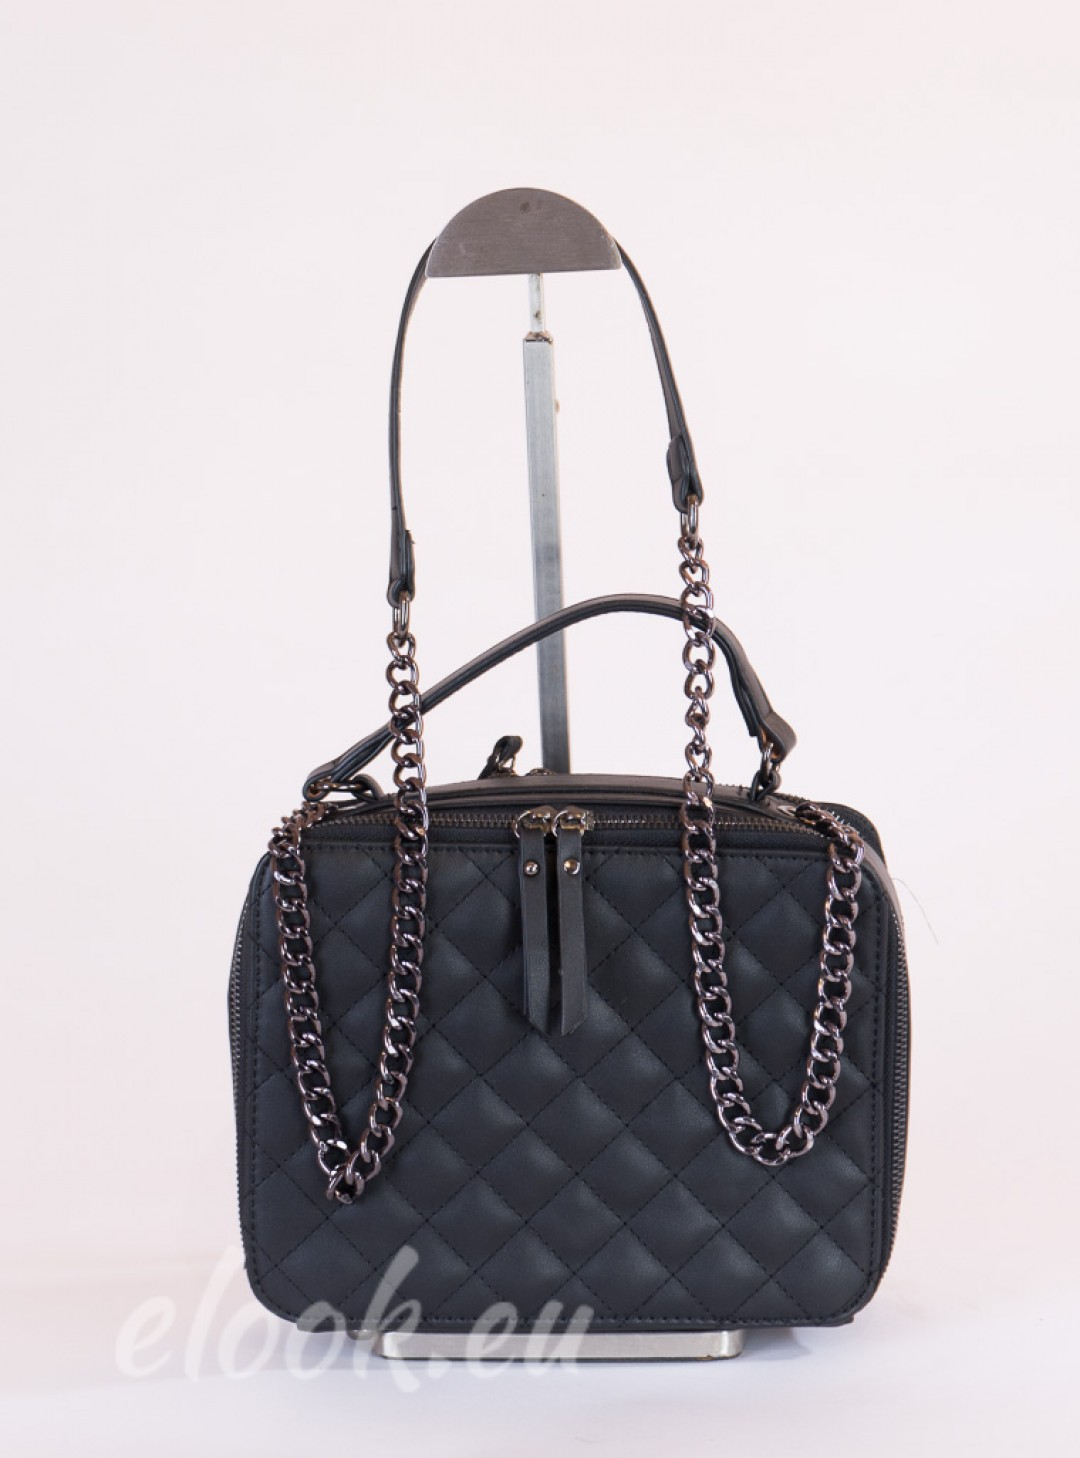 Bag-shaped briefcase and long handle from chain